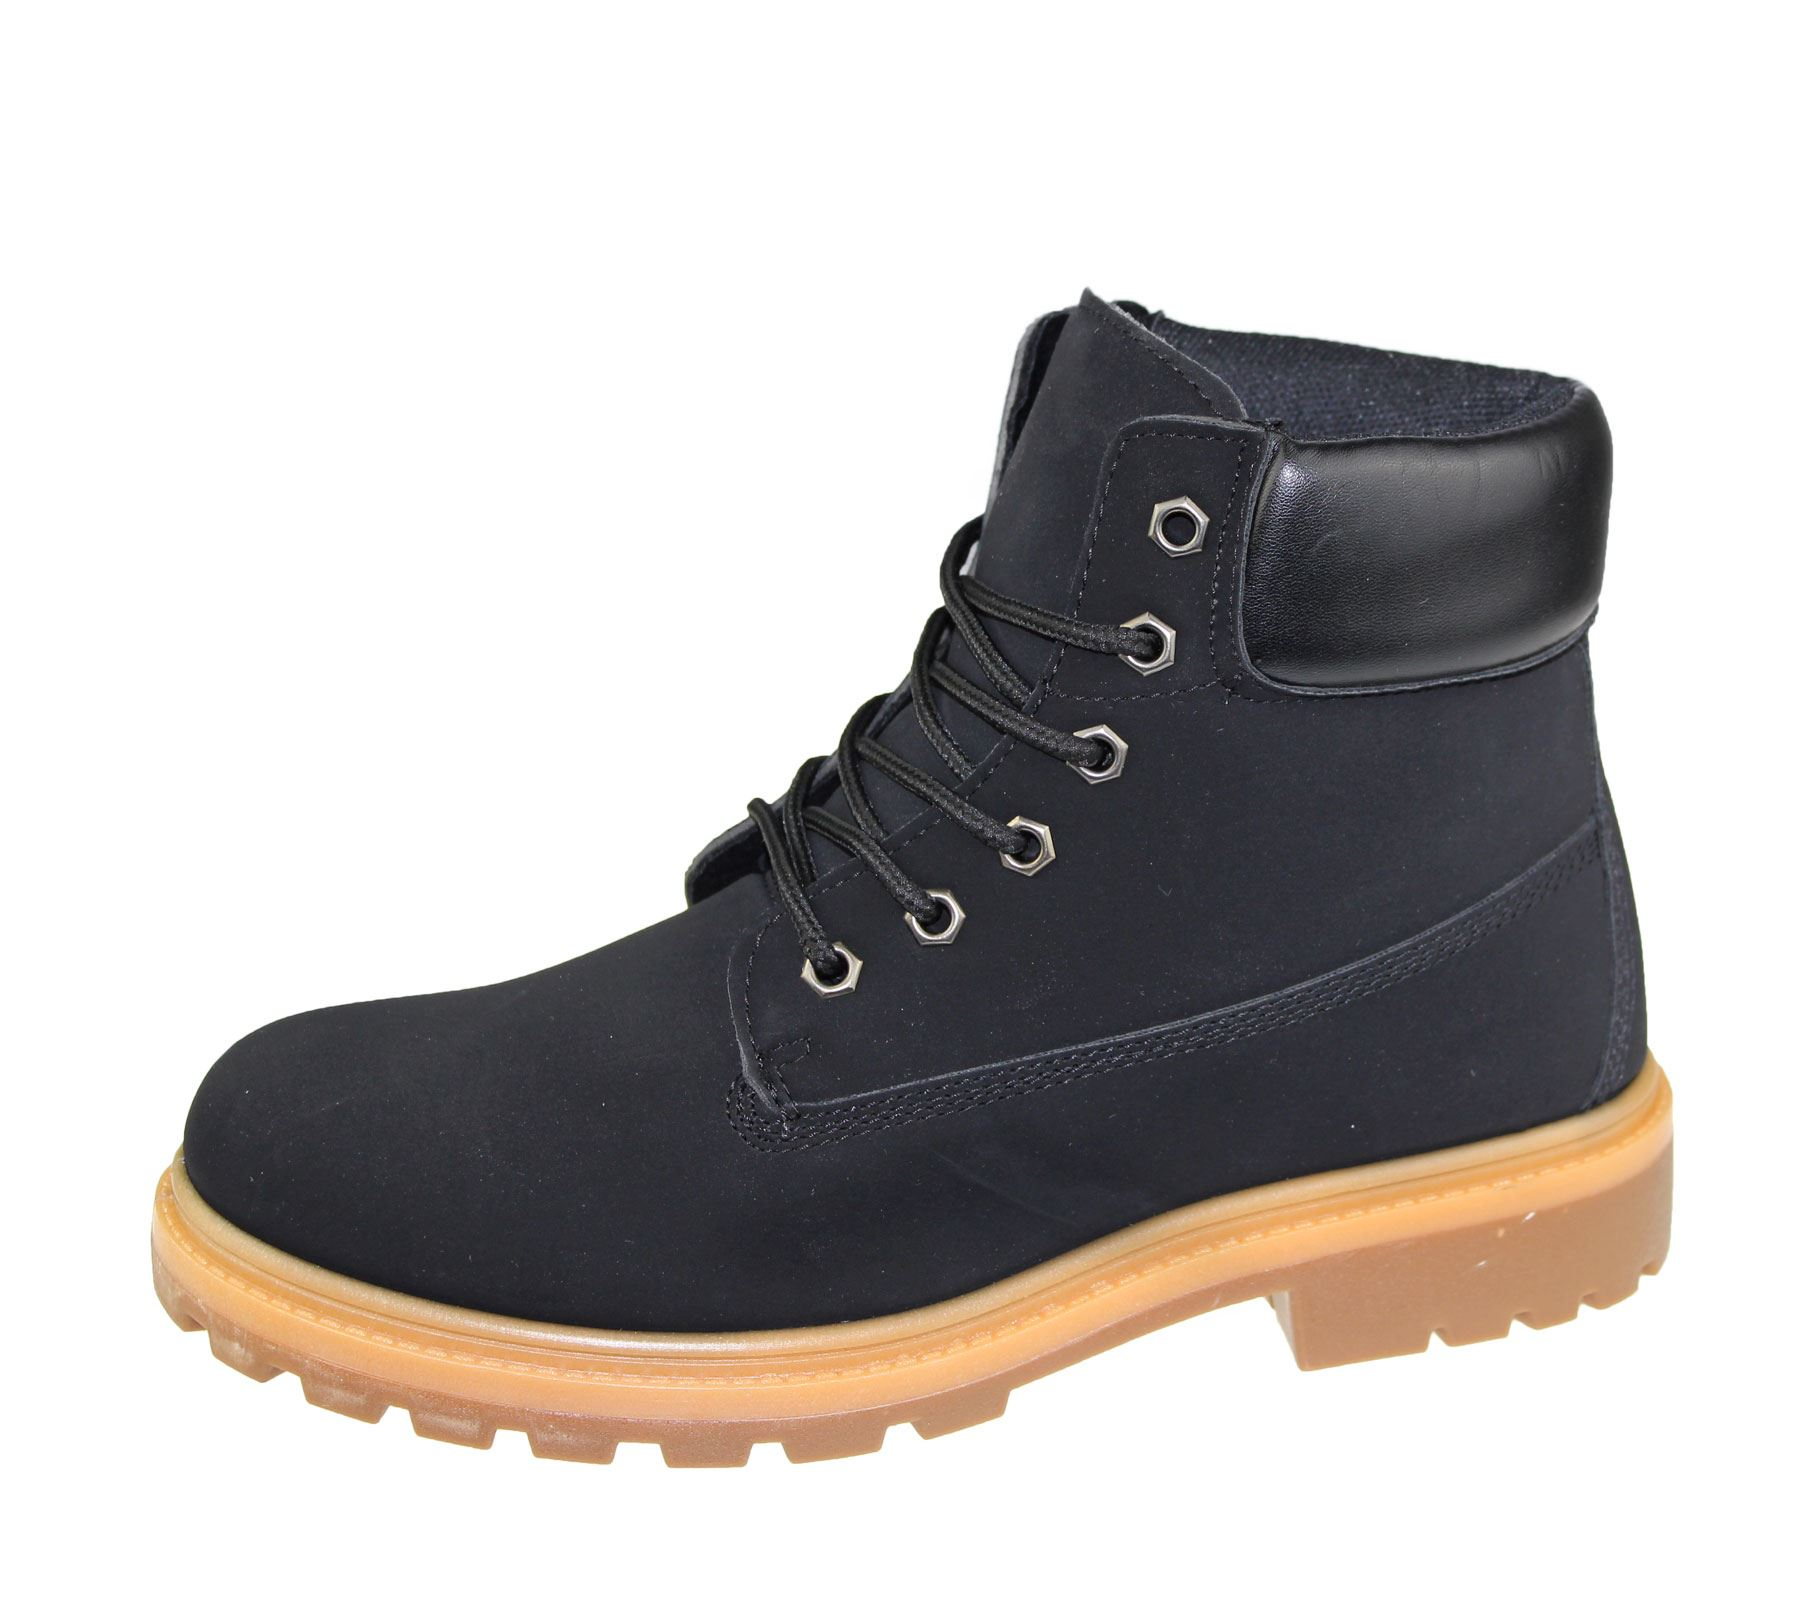 womens high top boots hiking desert combat ankle